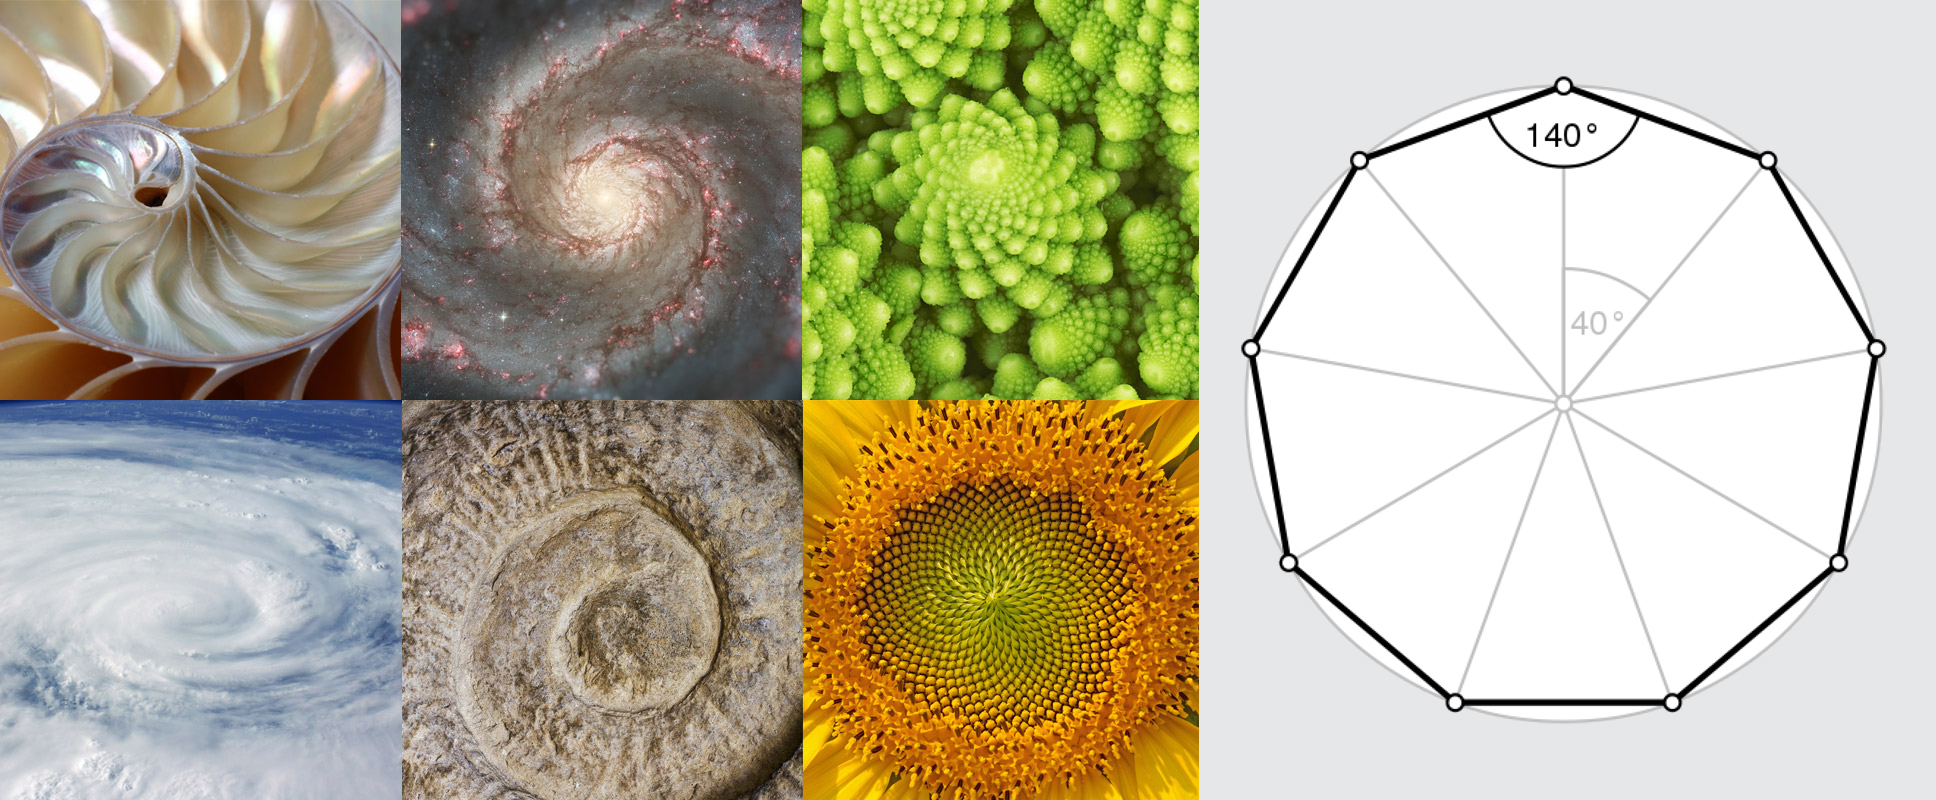 Above: Moodboard for the development of the logo and the visual identity. Below: early logo sketches based on the idea of the Fibonacci sequence.